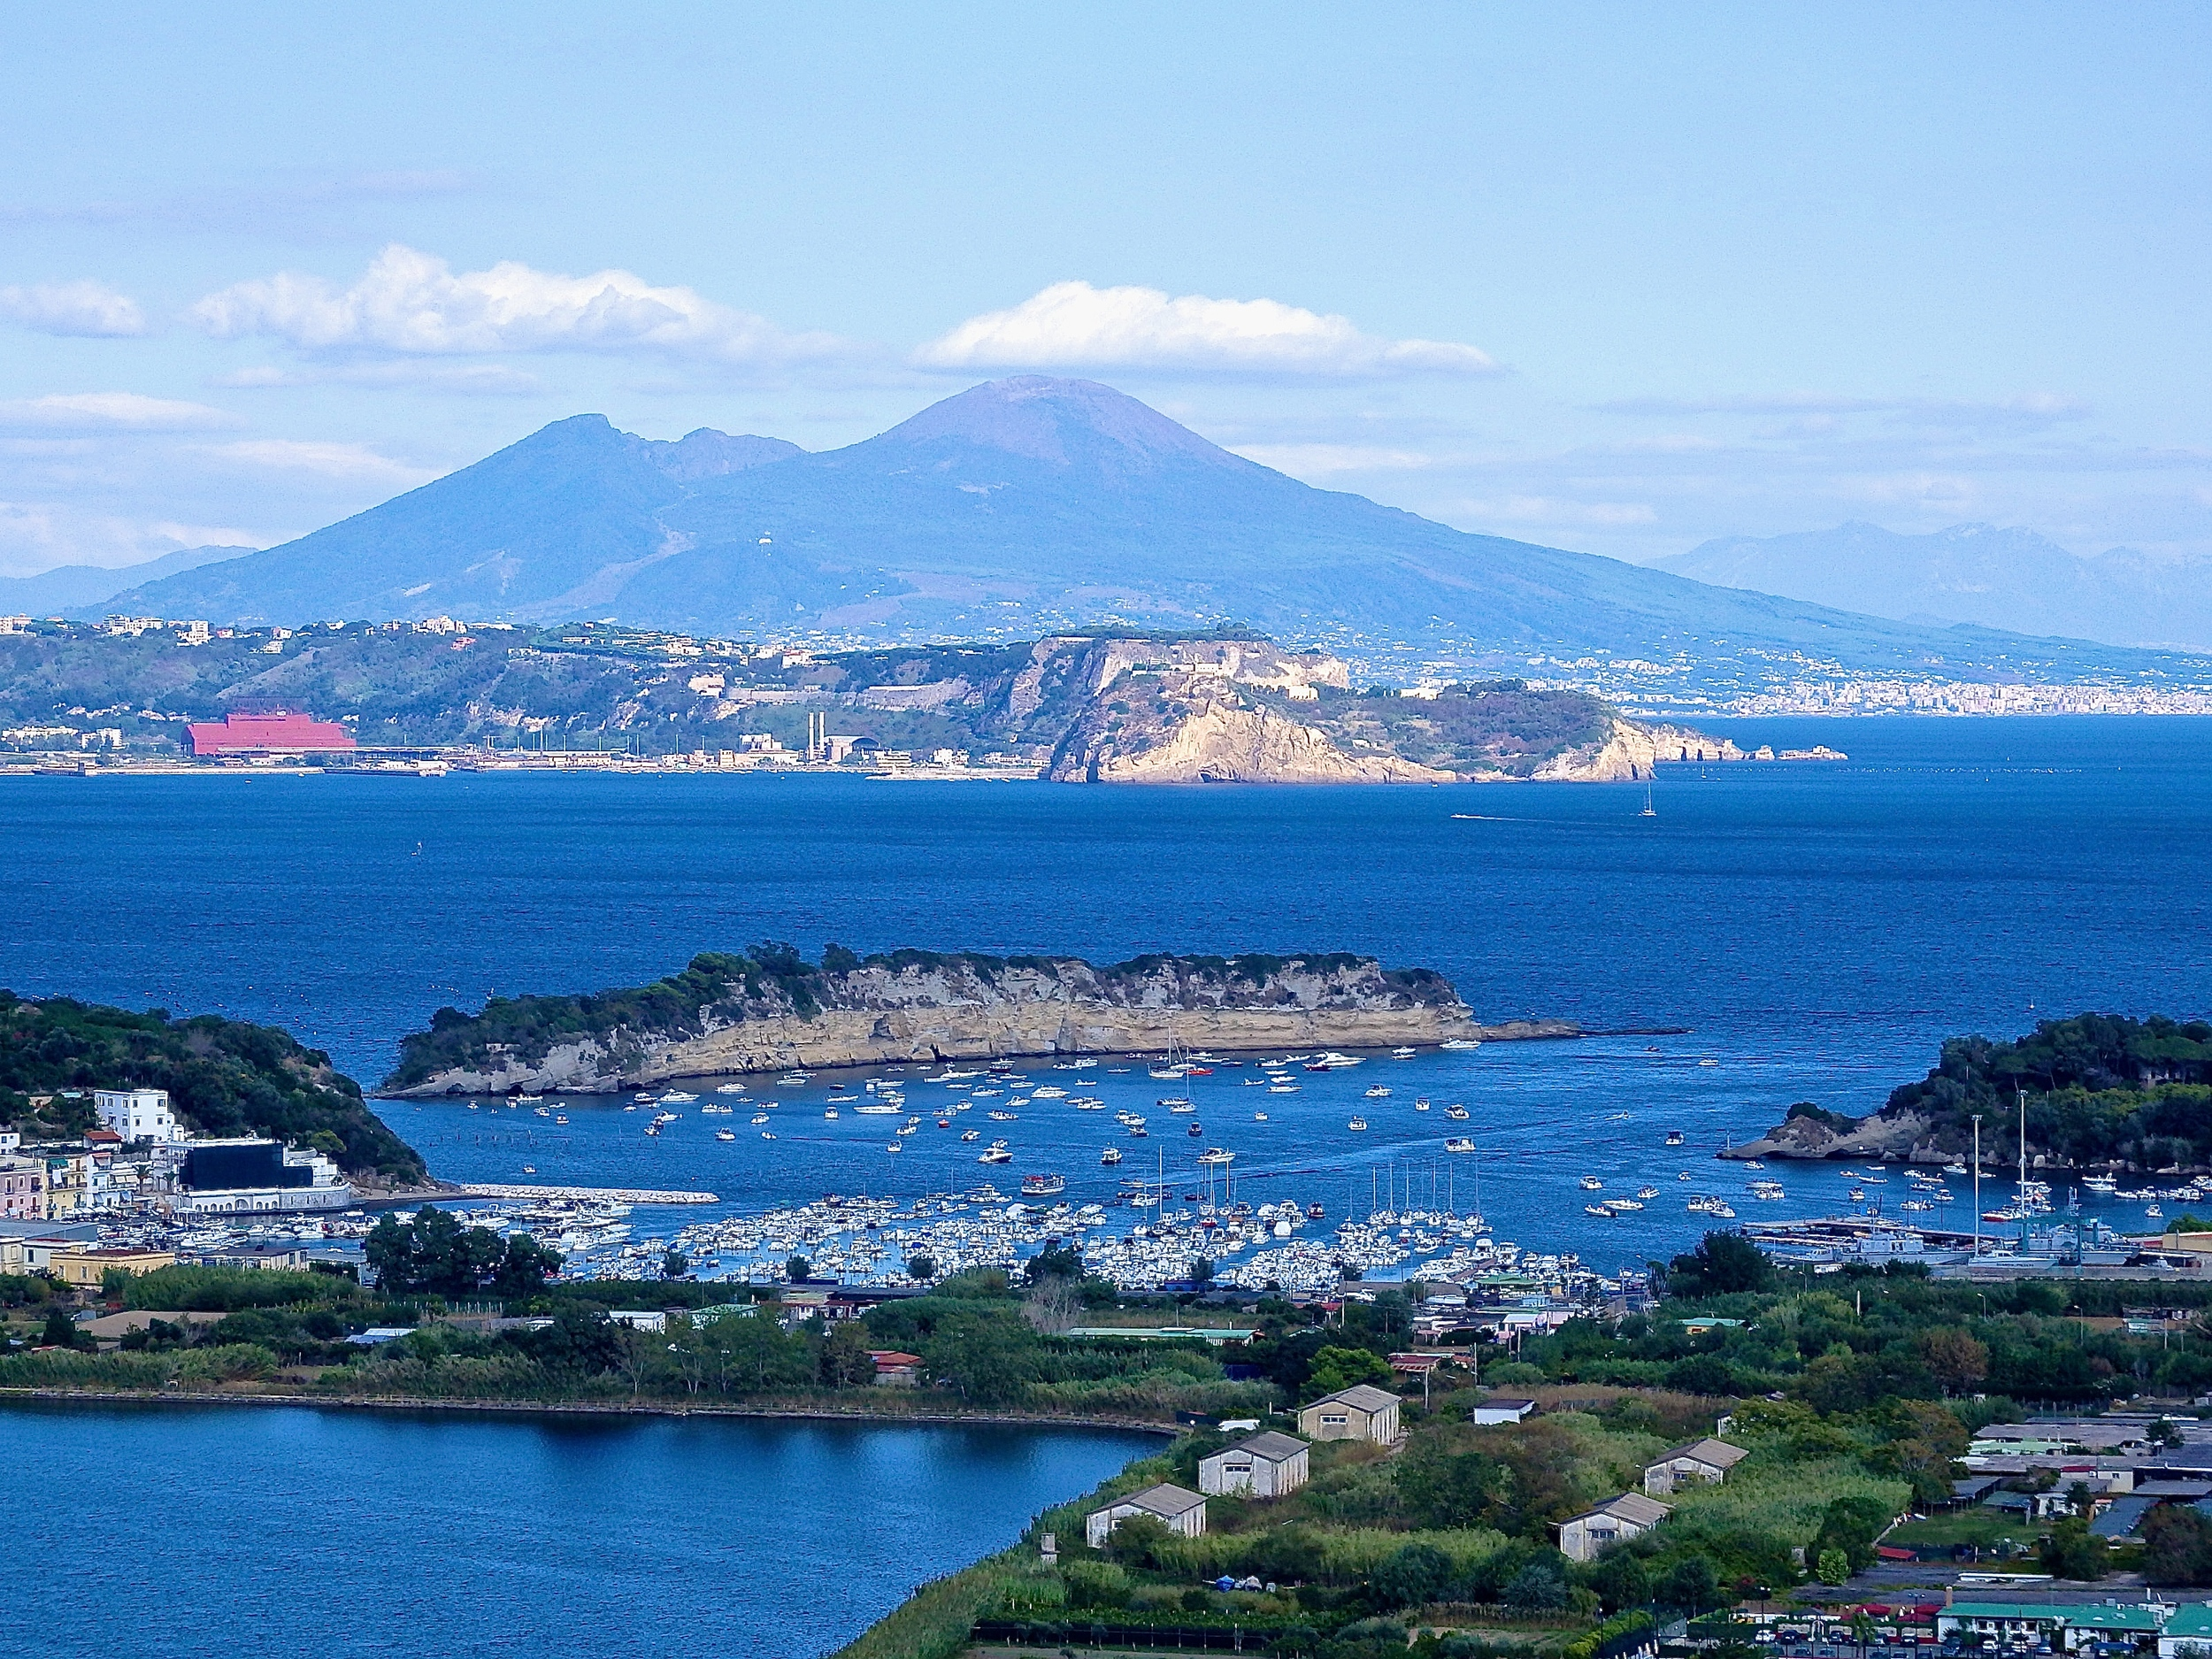 The Bay of Naples ~Baiae, Naples and Vesuvius (Photograph taken by Susan Nelson)